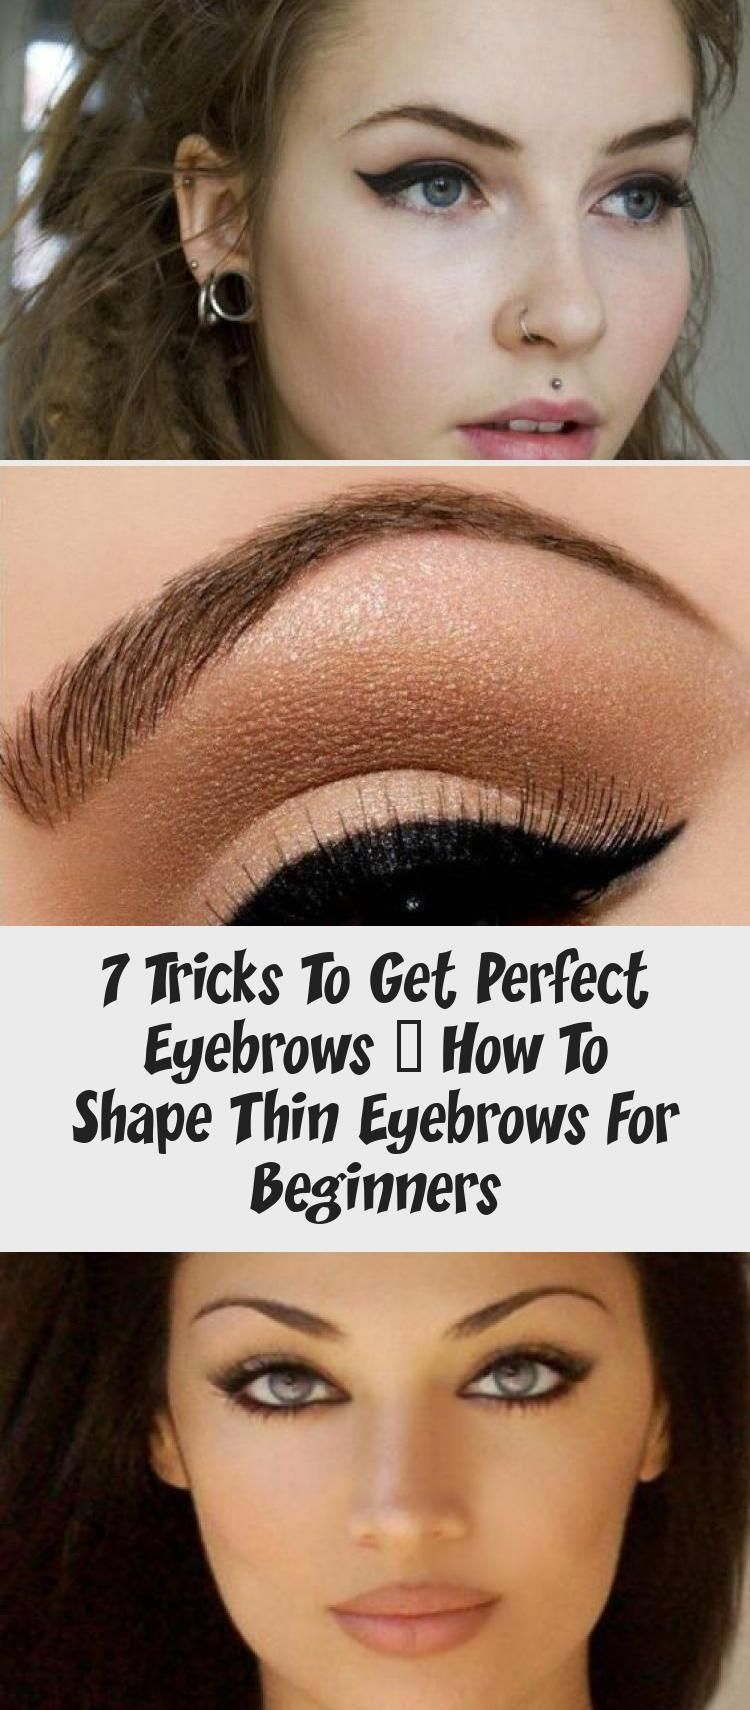 7 Tricks To Get Perfect Eyebrows How To Shape Thin